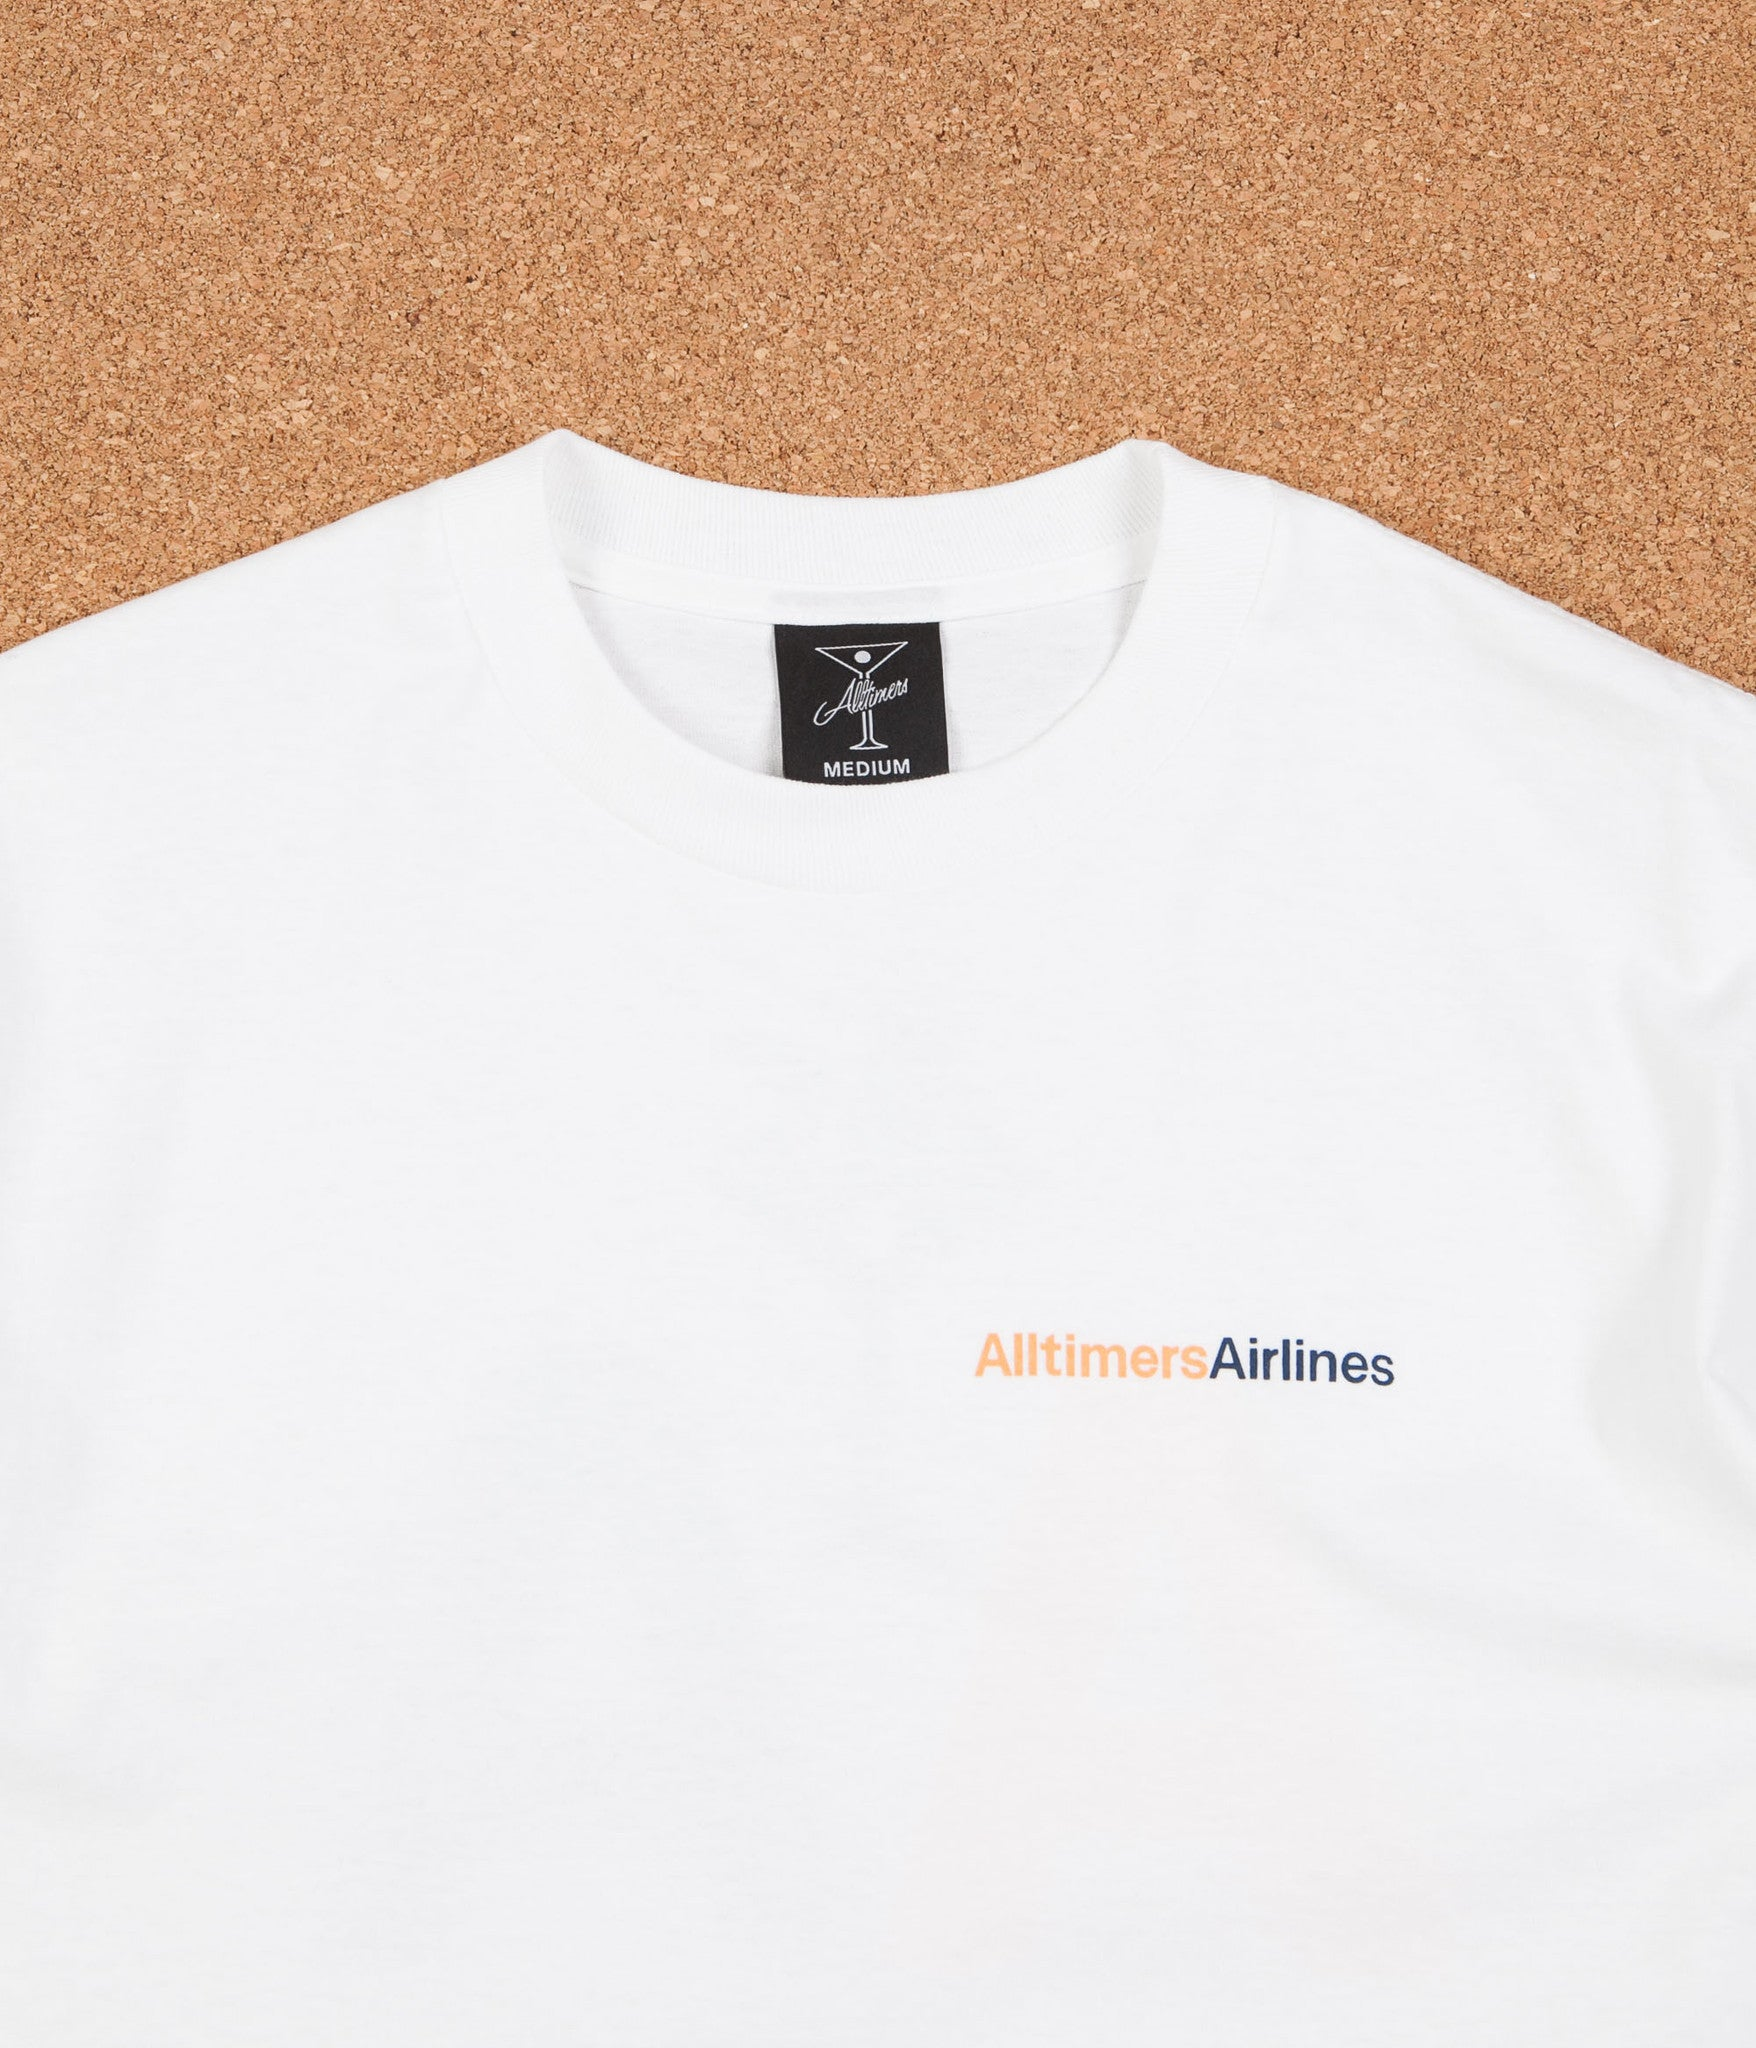 Alltimers Airline T-Shirt - White